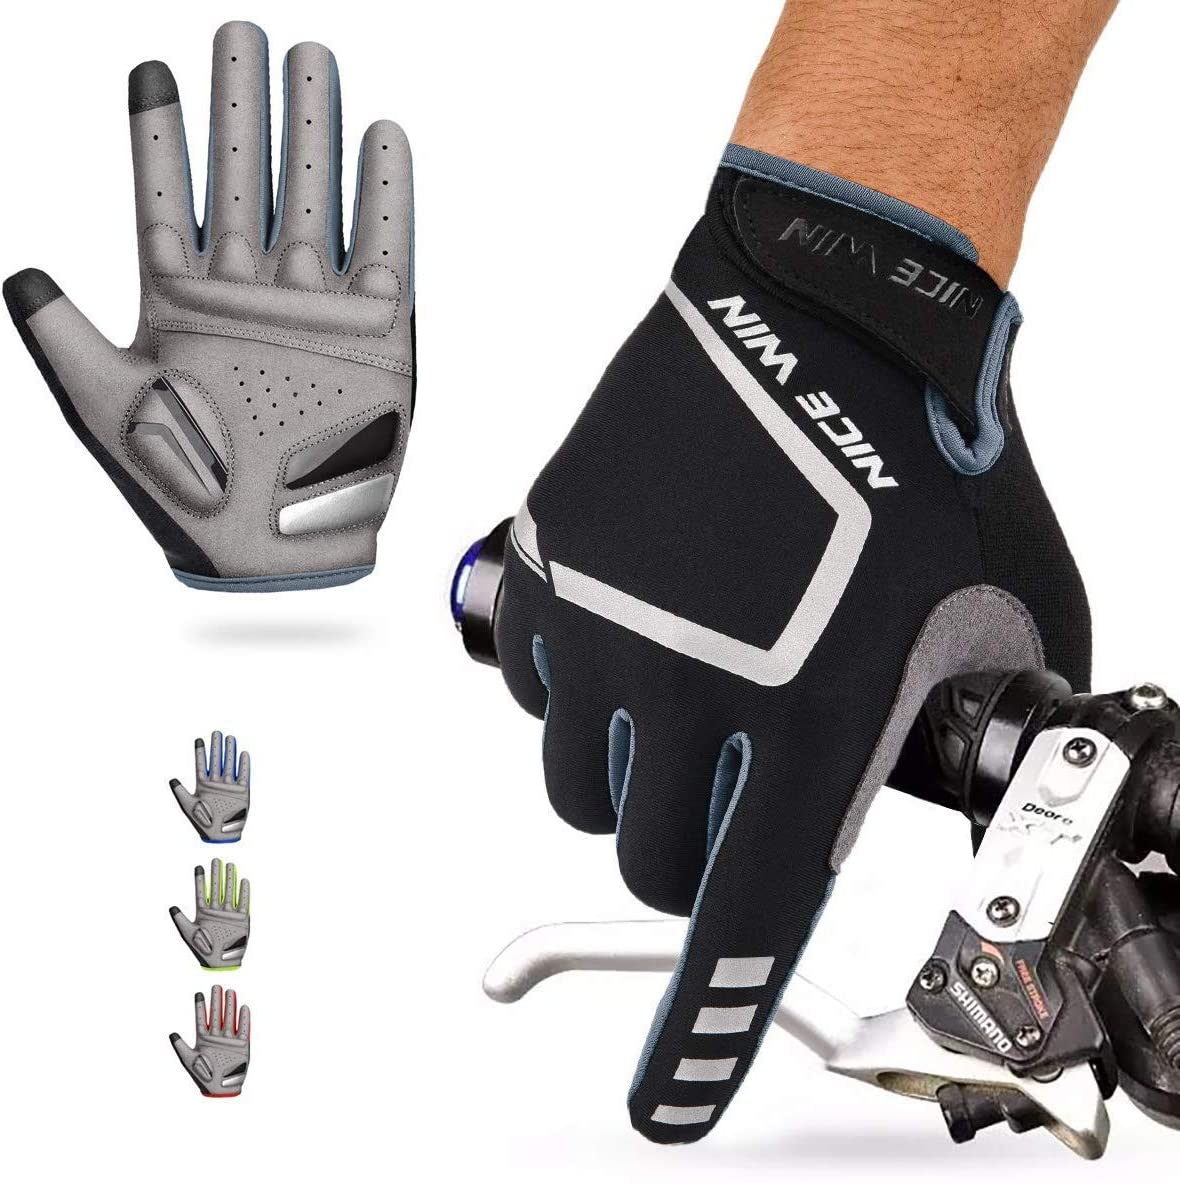 nicewin cycling gloves isolated on white background